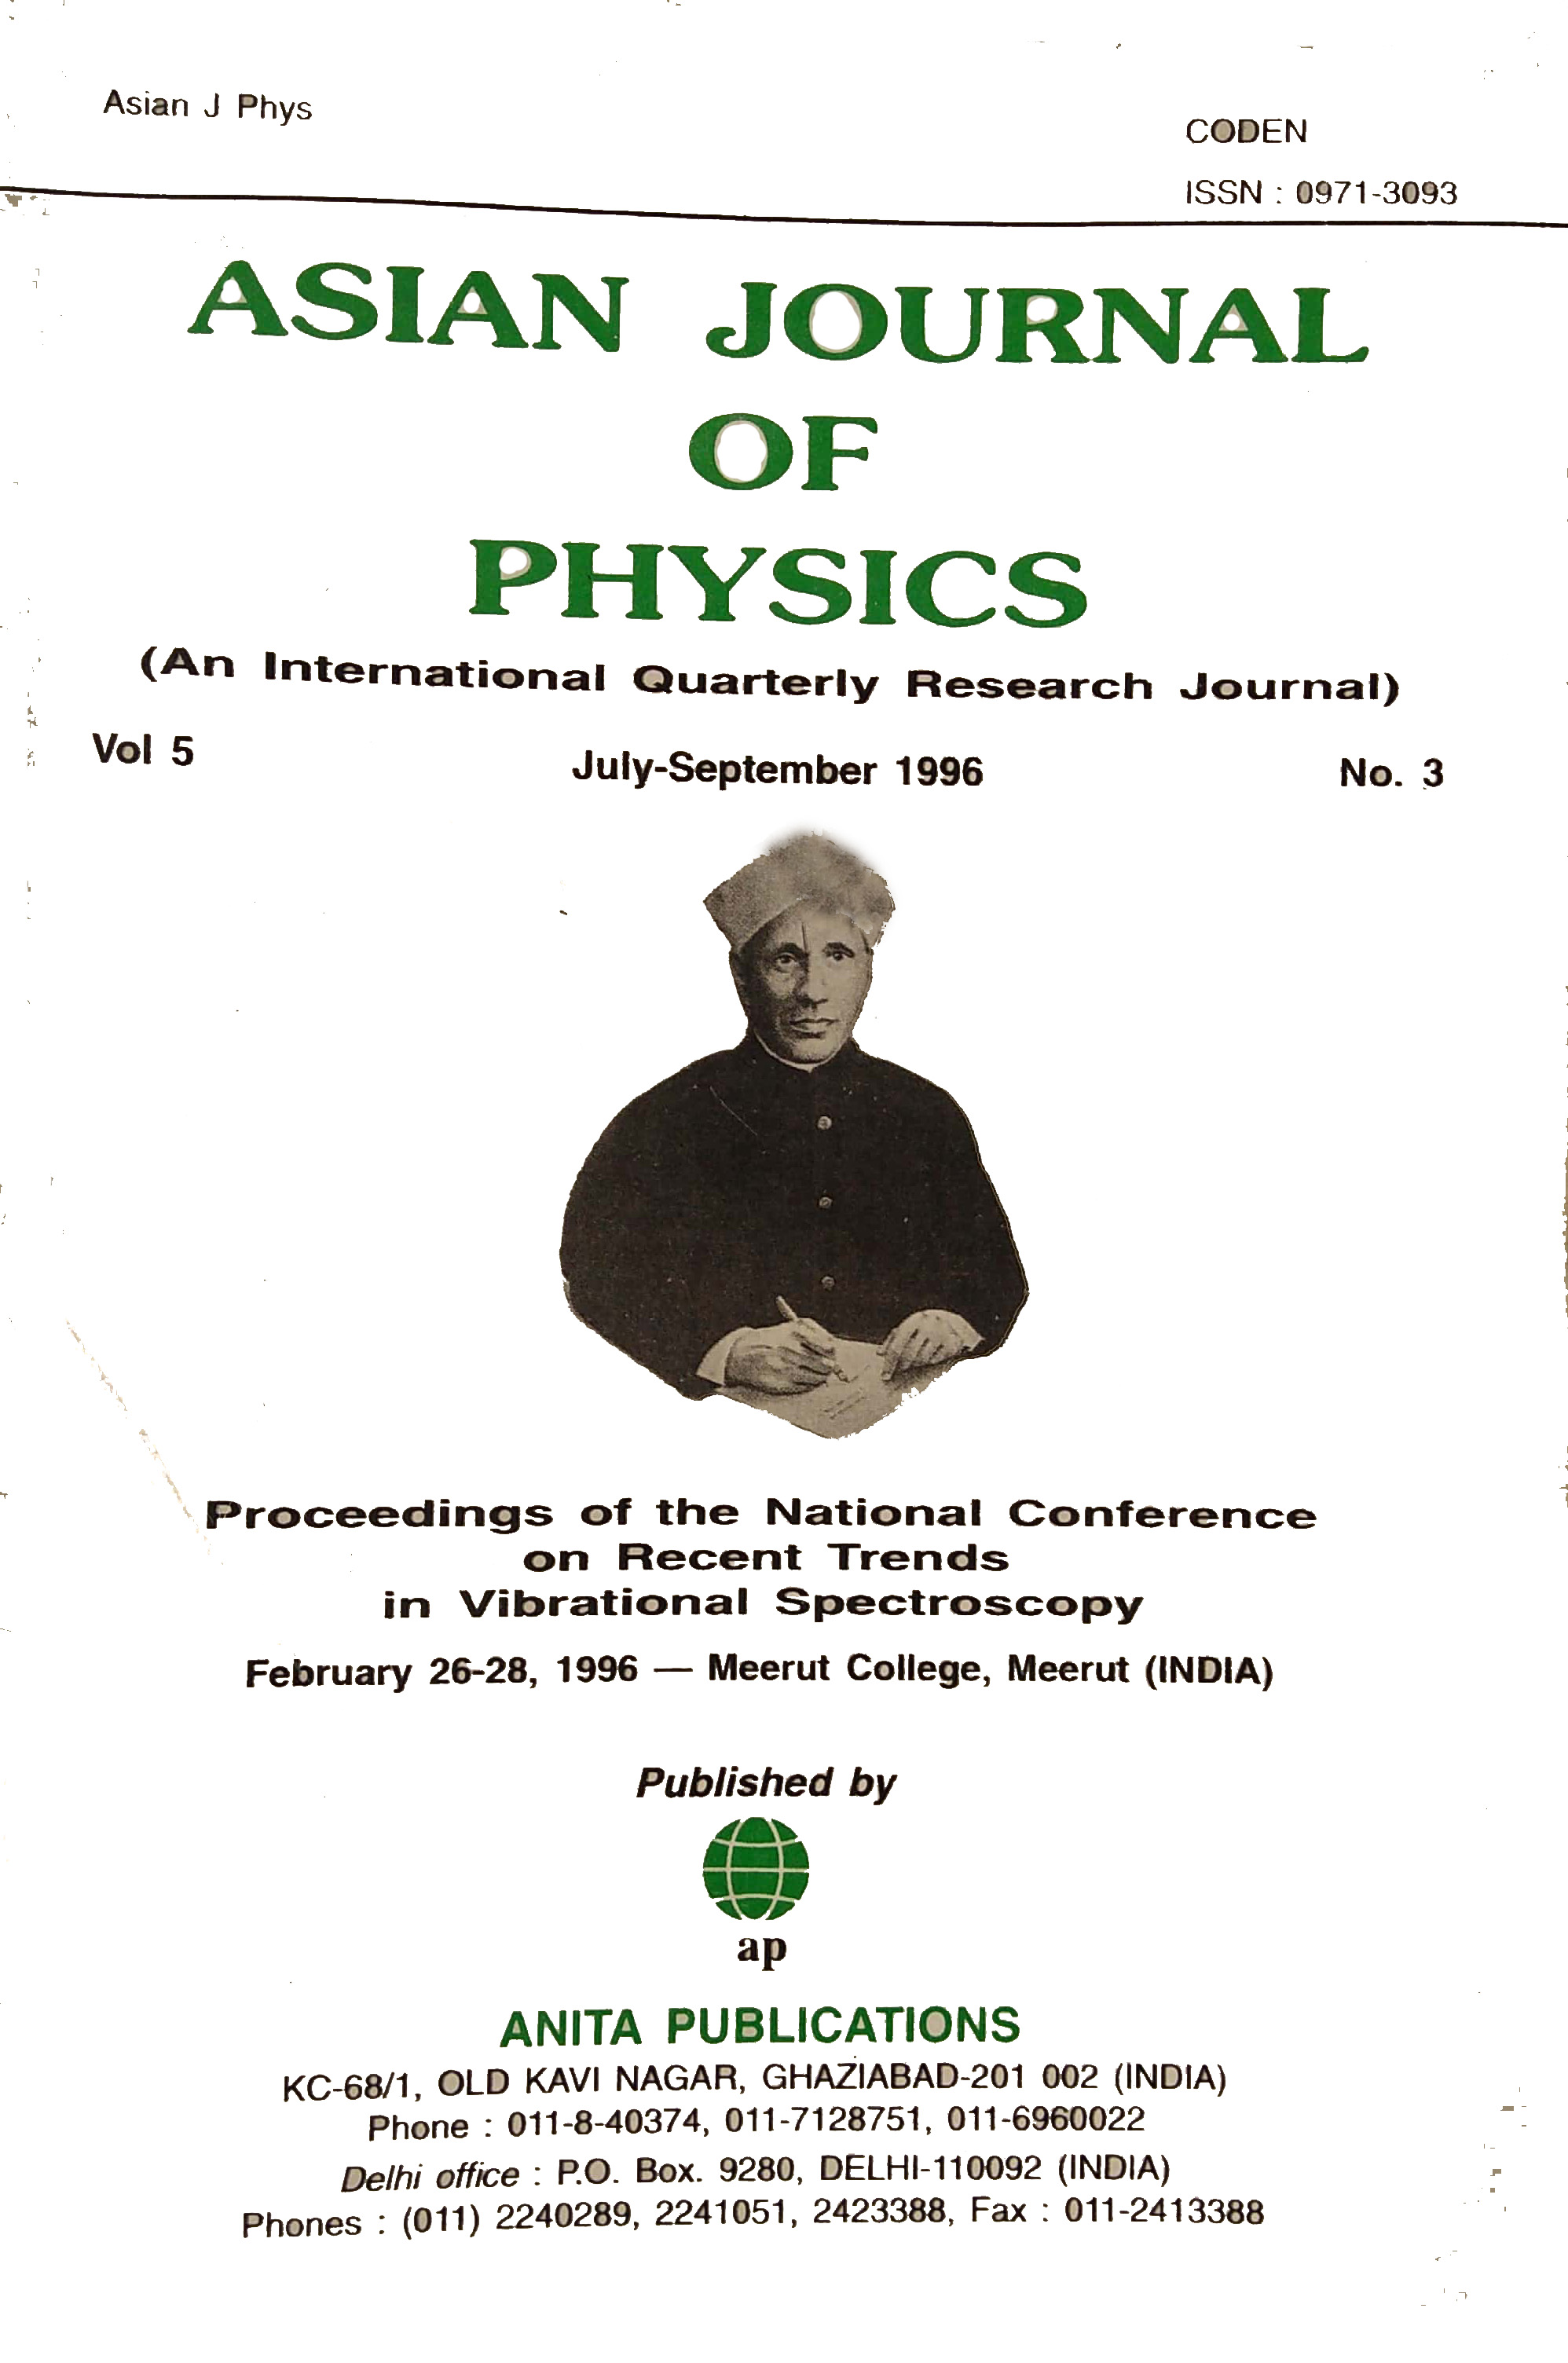 AJP Vol 5 No 3, 1996